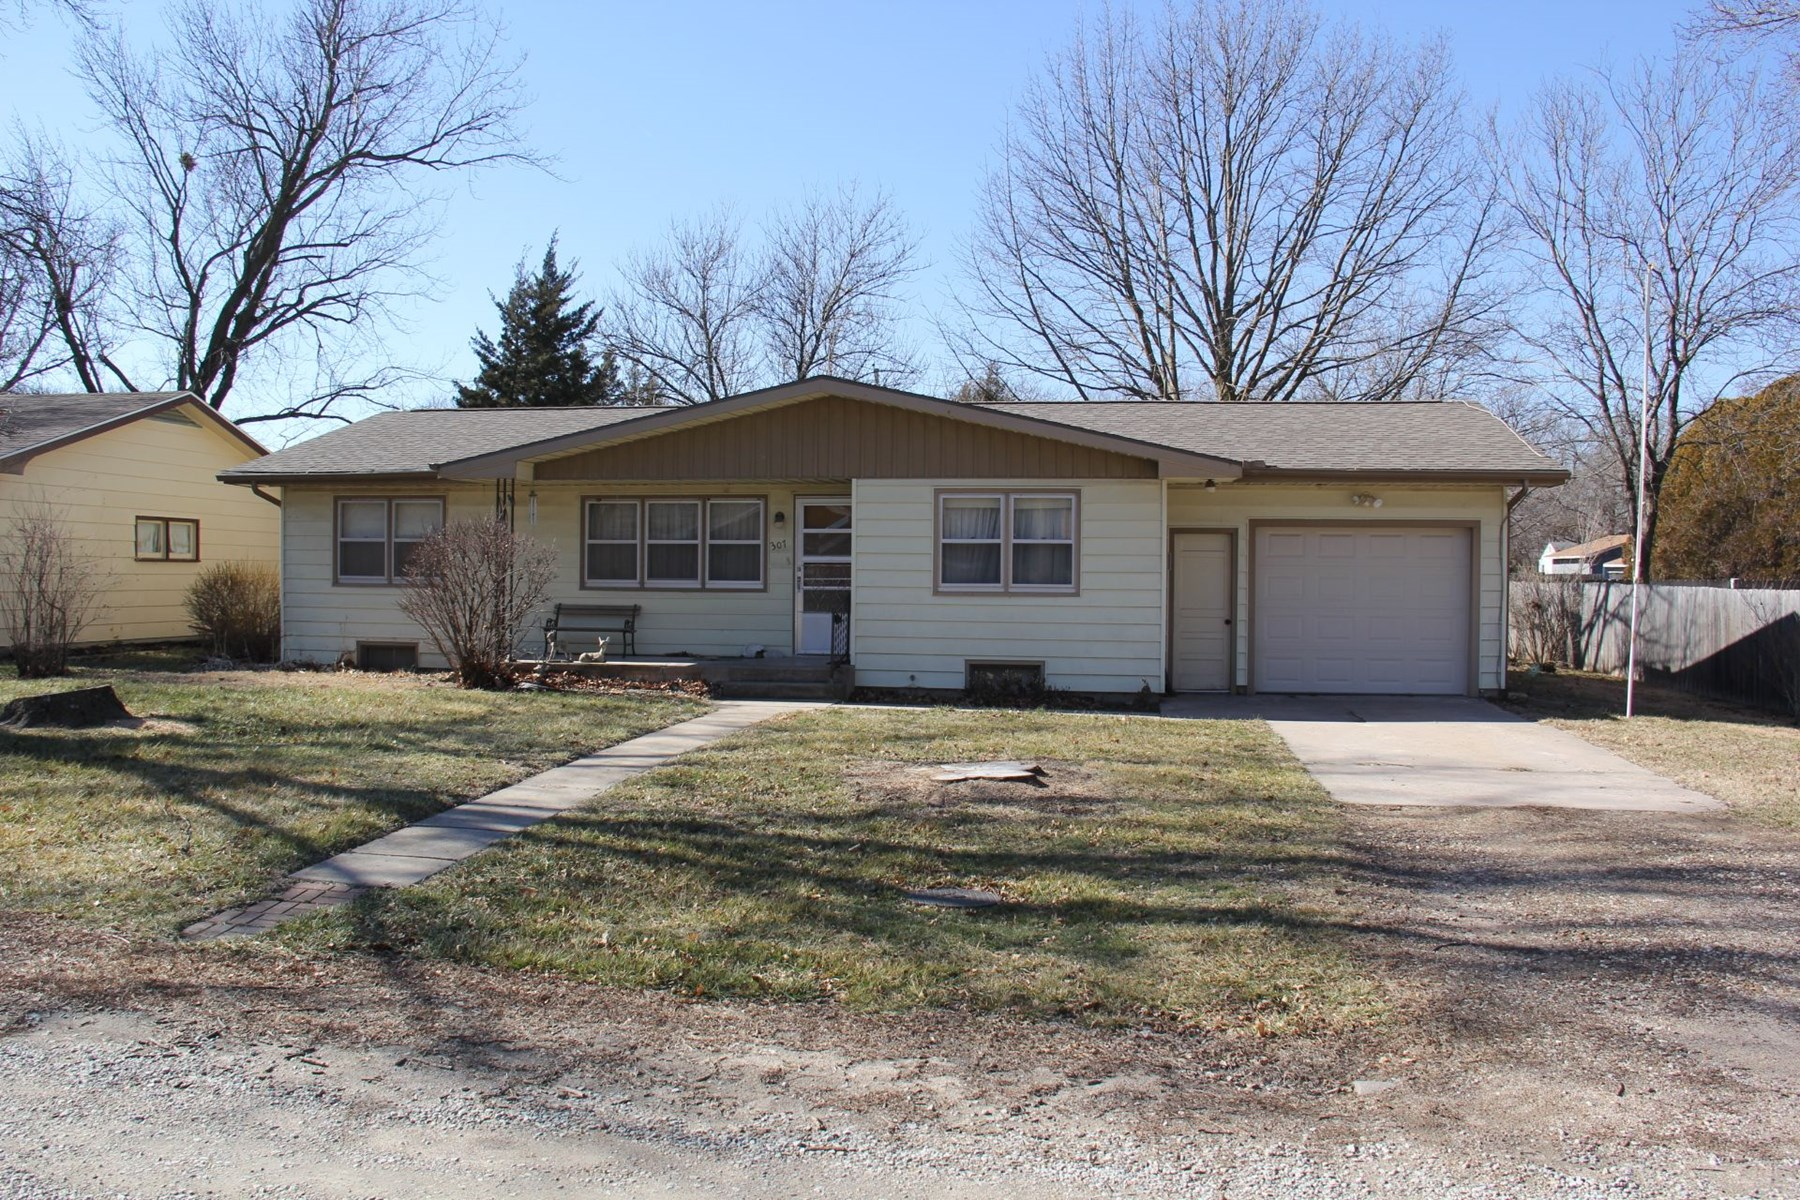 GOESSEL, KS HOME & CONTENTS FOR SALE AT INTERNET AUCTION